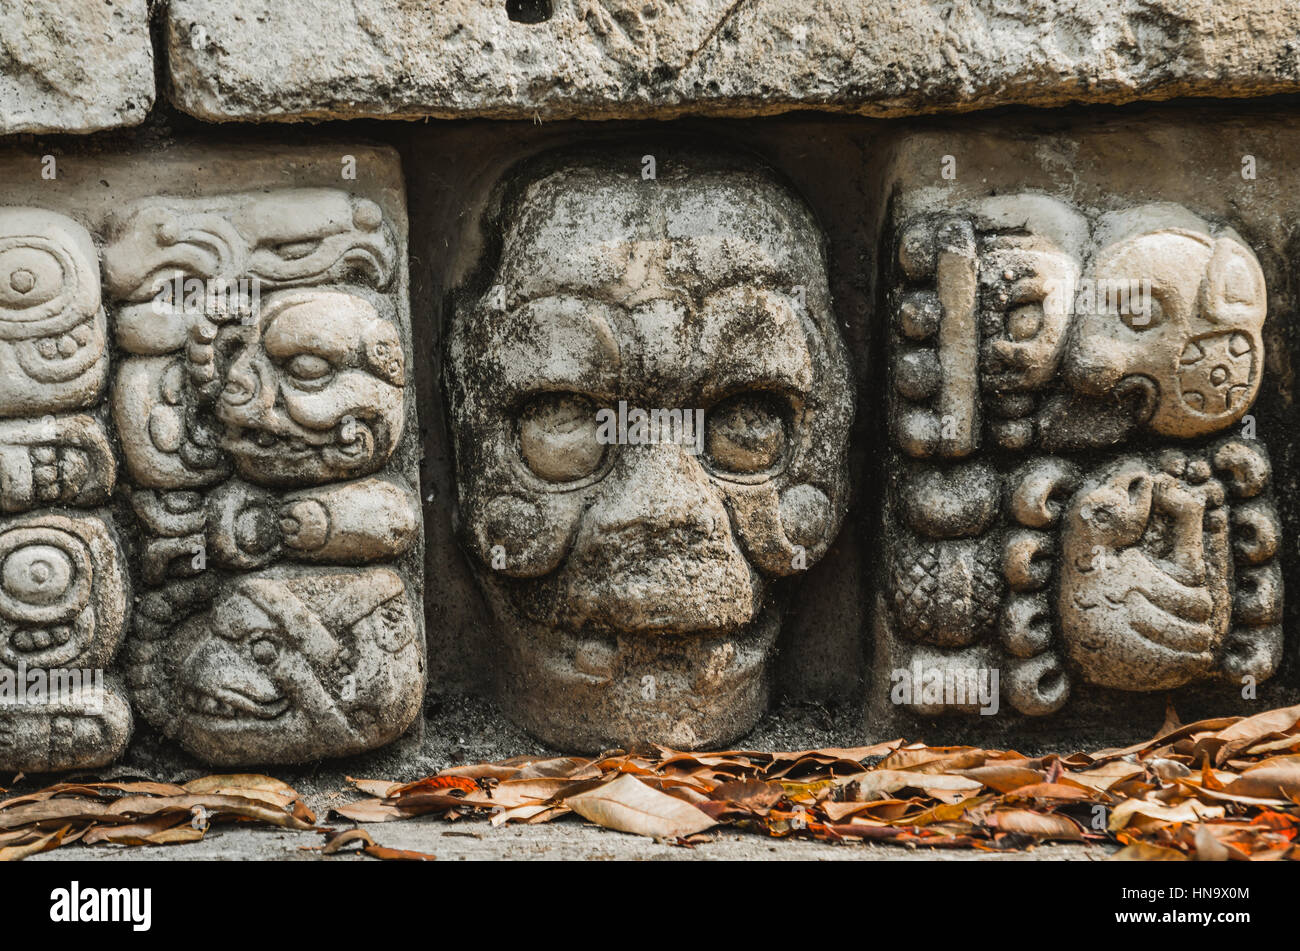 Stone sculpture at copán ruinas - Stock Image